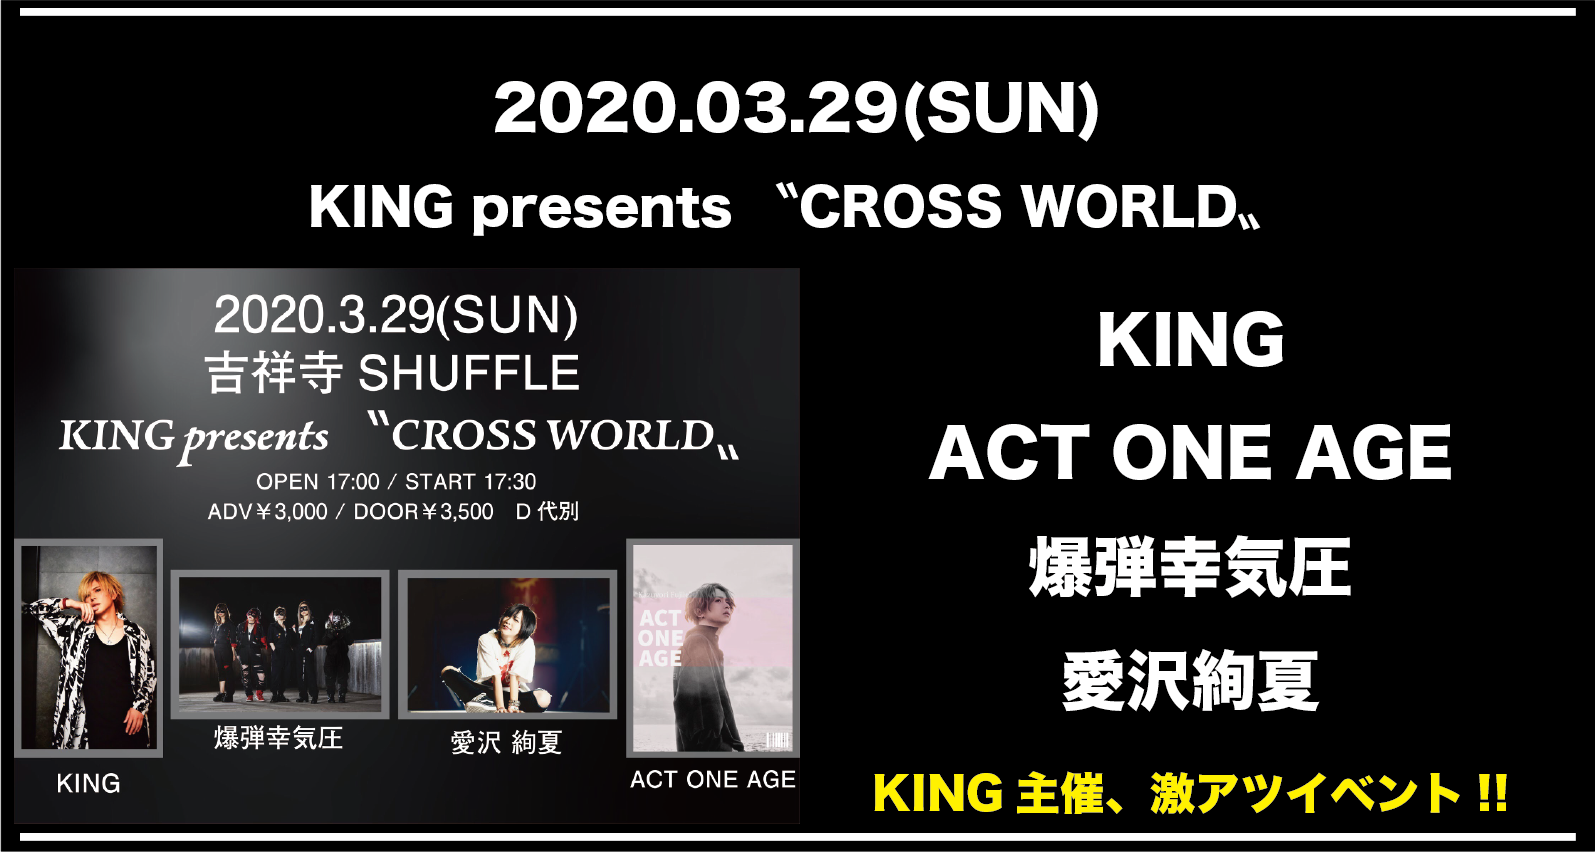 KING presents 〝CROSS WORLD〟